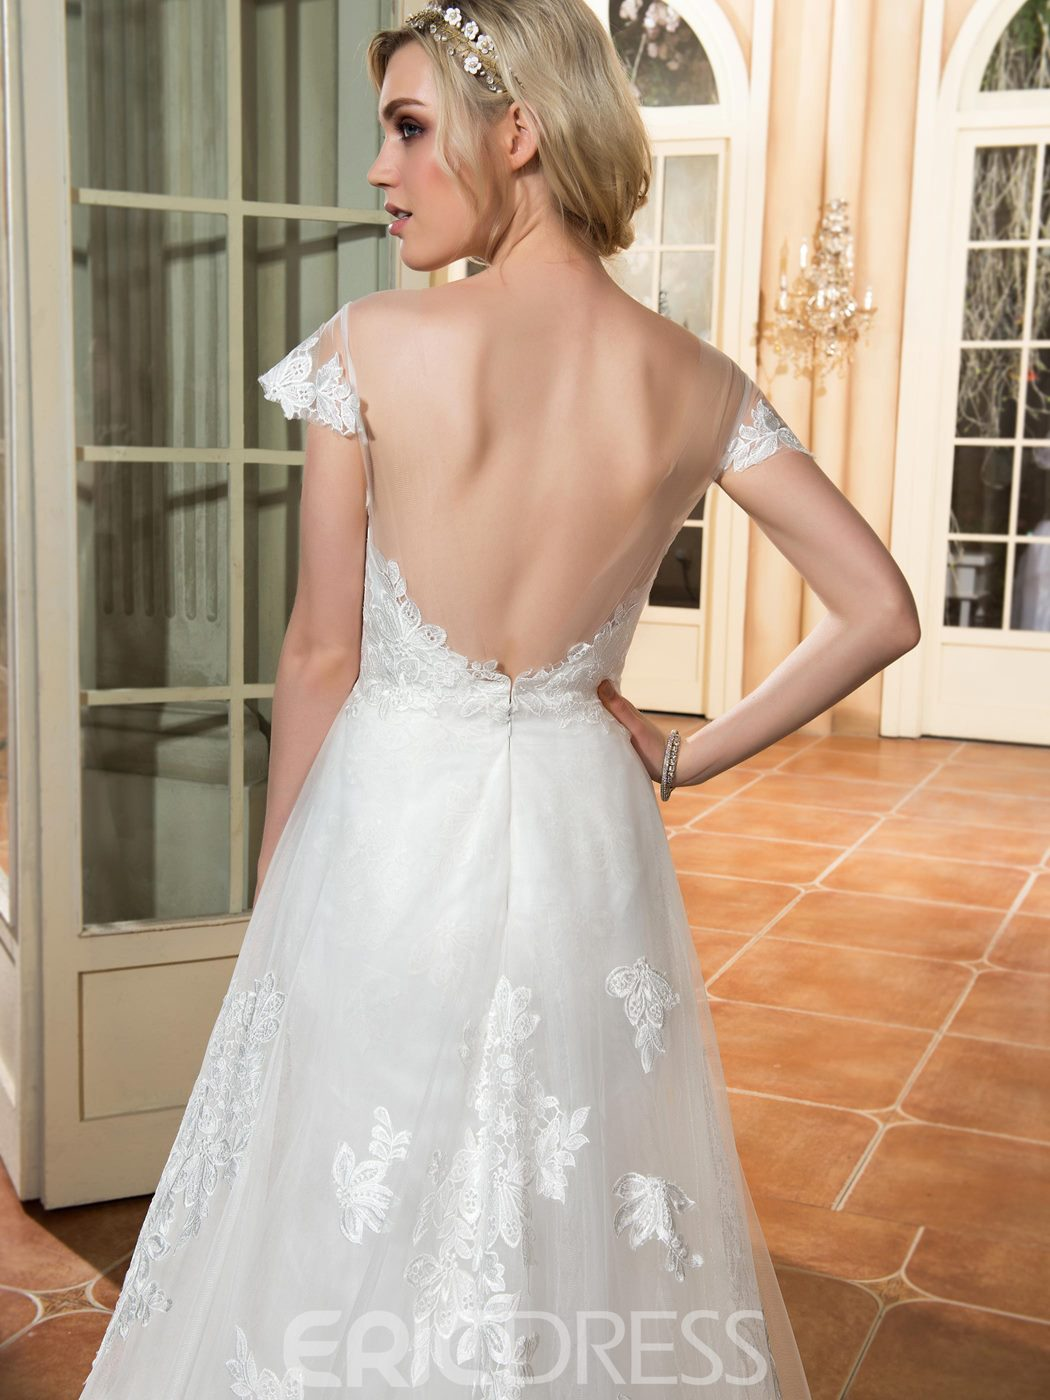 Ericdress Beautiful Illusion Neckline Appliques A Line Backless Wedding Dress